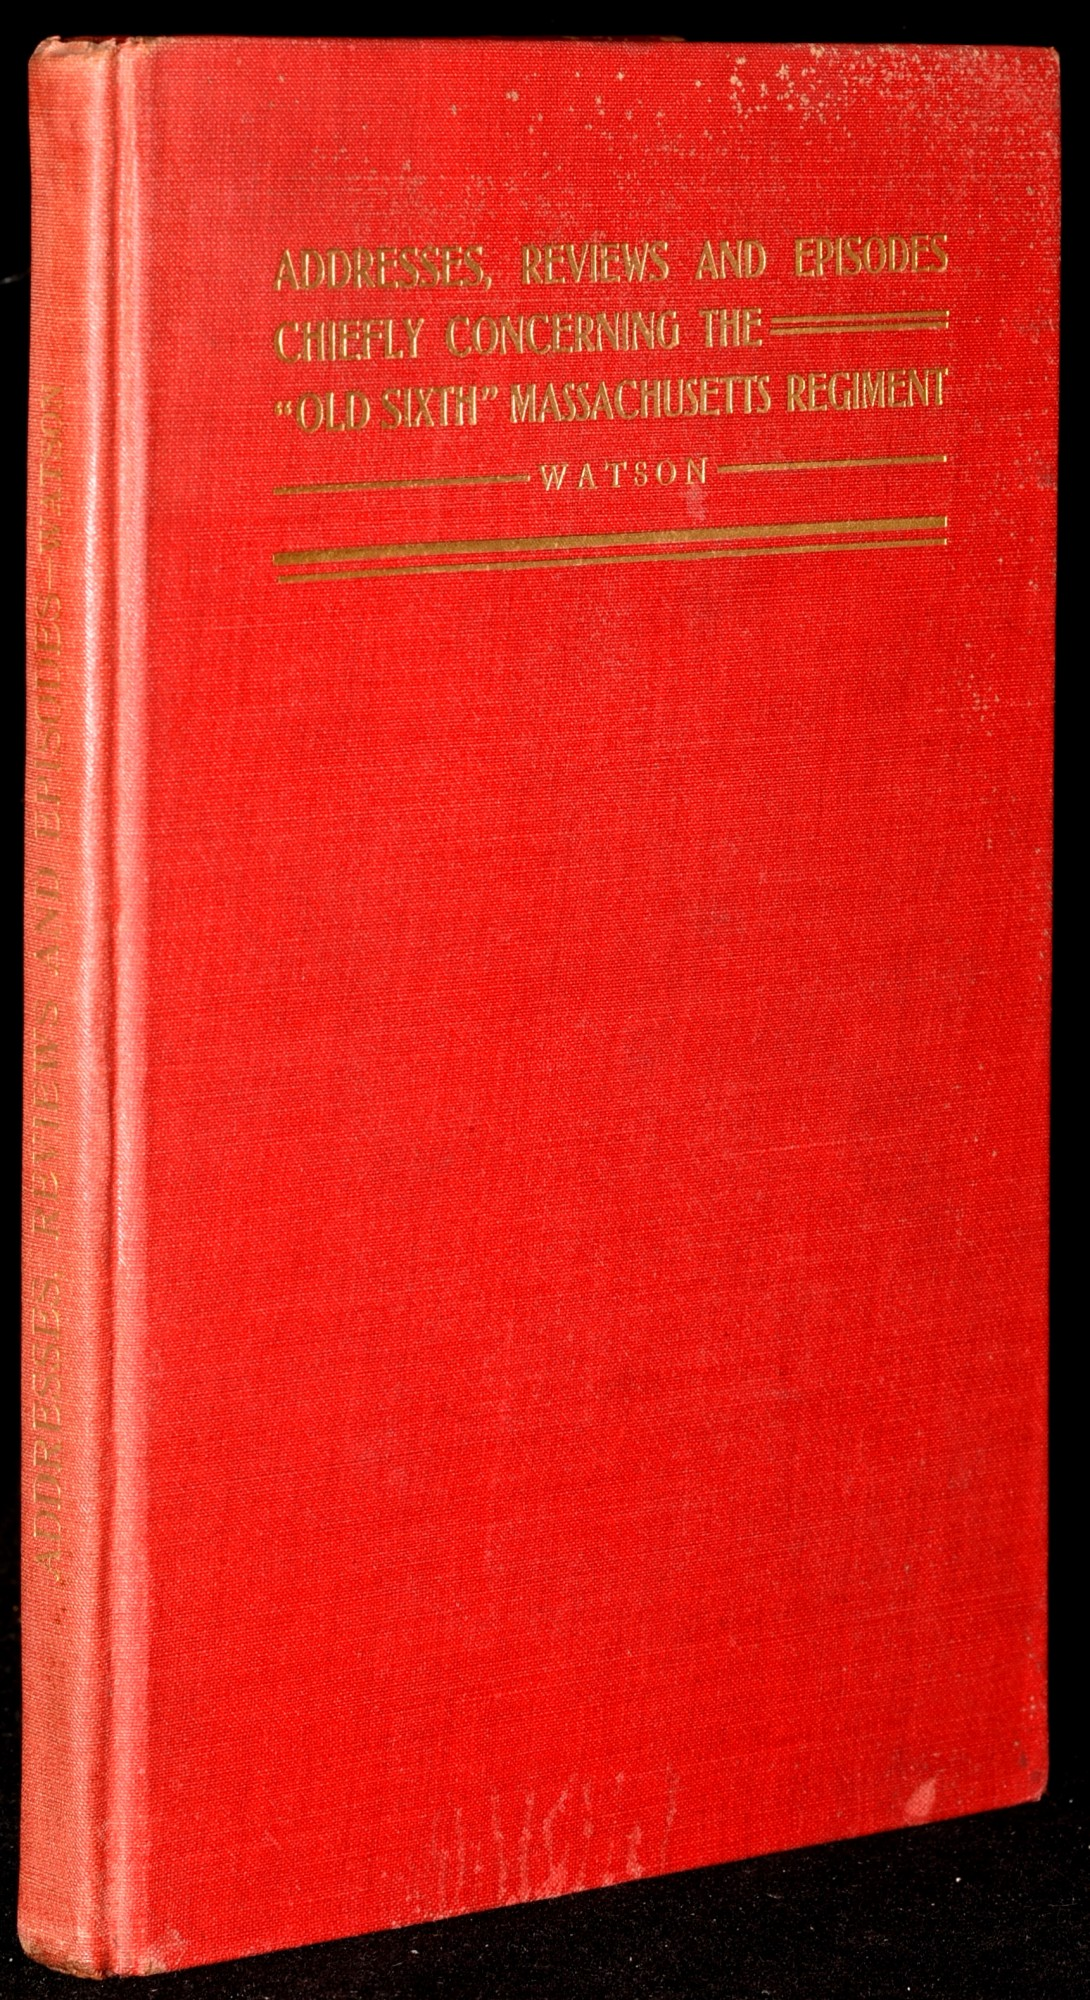 """ADDRESSES, REVIEWS AND EPISODES, CHIEFLY CONCERNING THE """"OLD SIXTH""""  MASSACHUSETTS REGIMENT by enjamin, Watson, rank on Black Swan Books"""